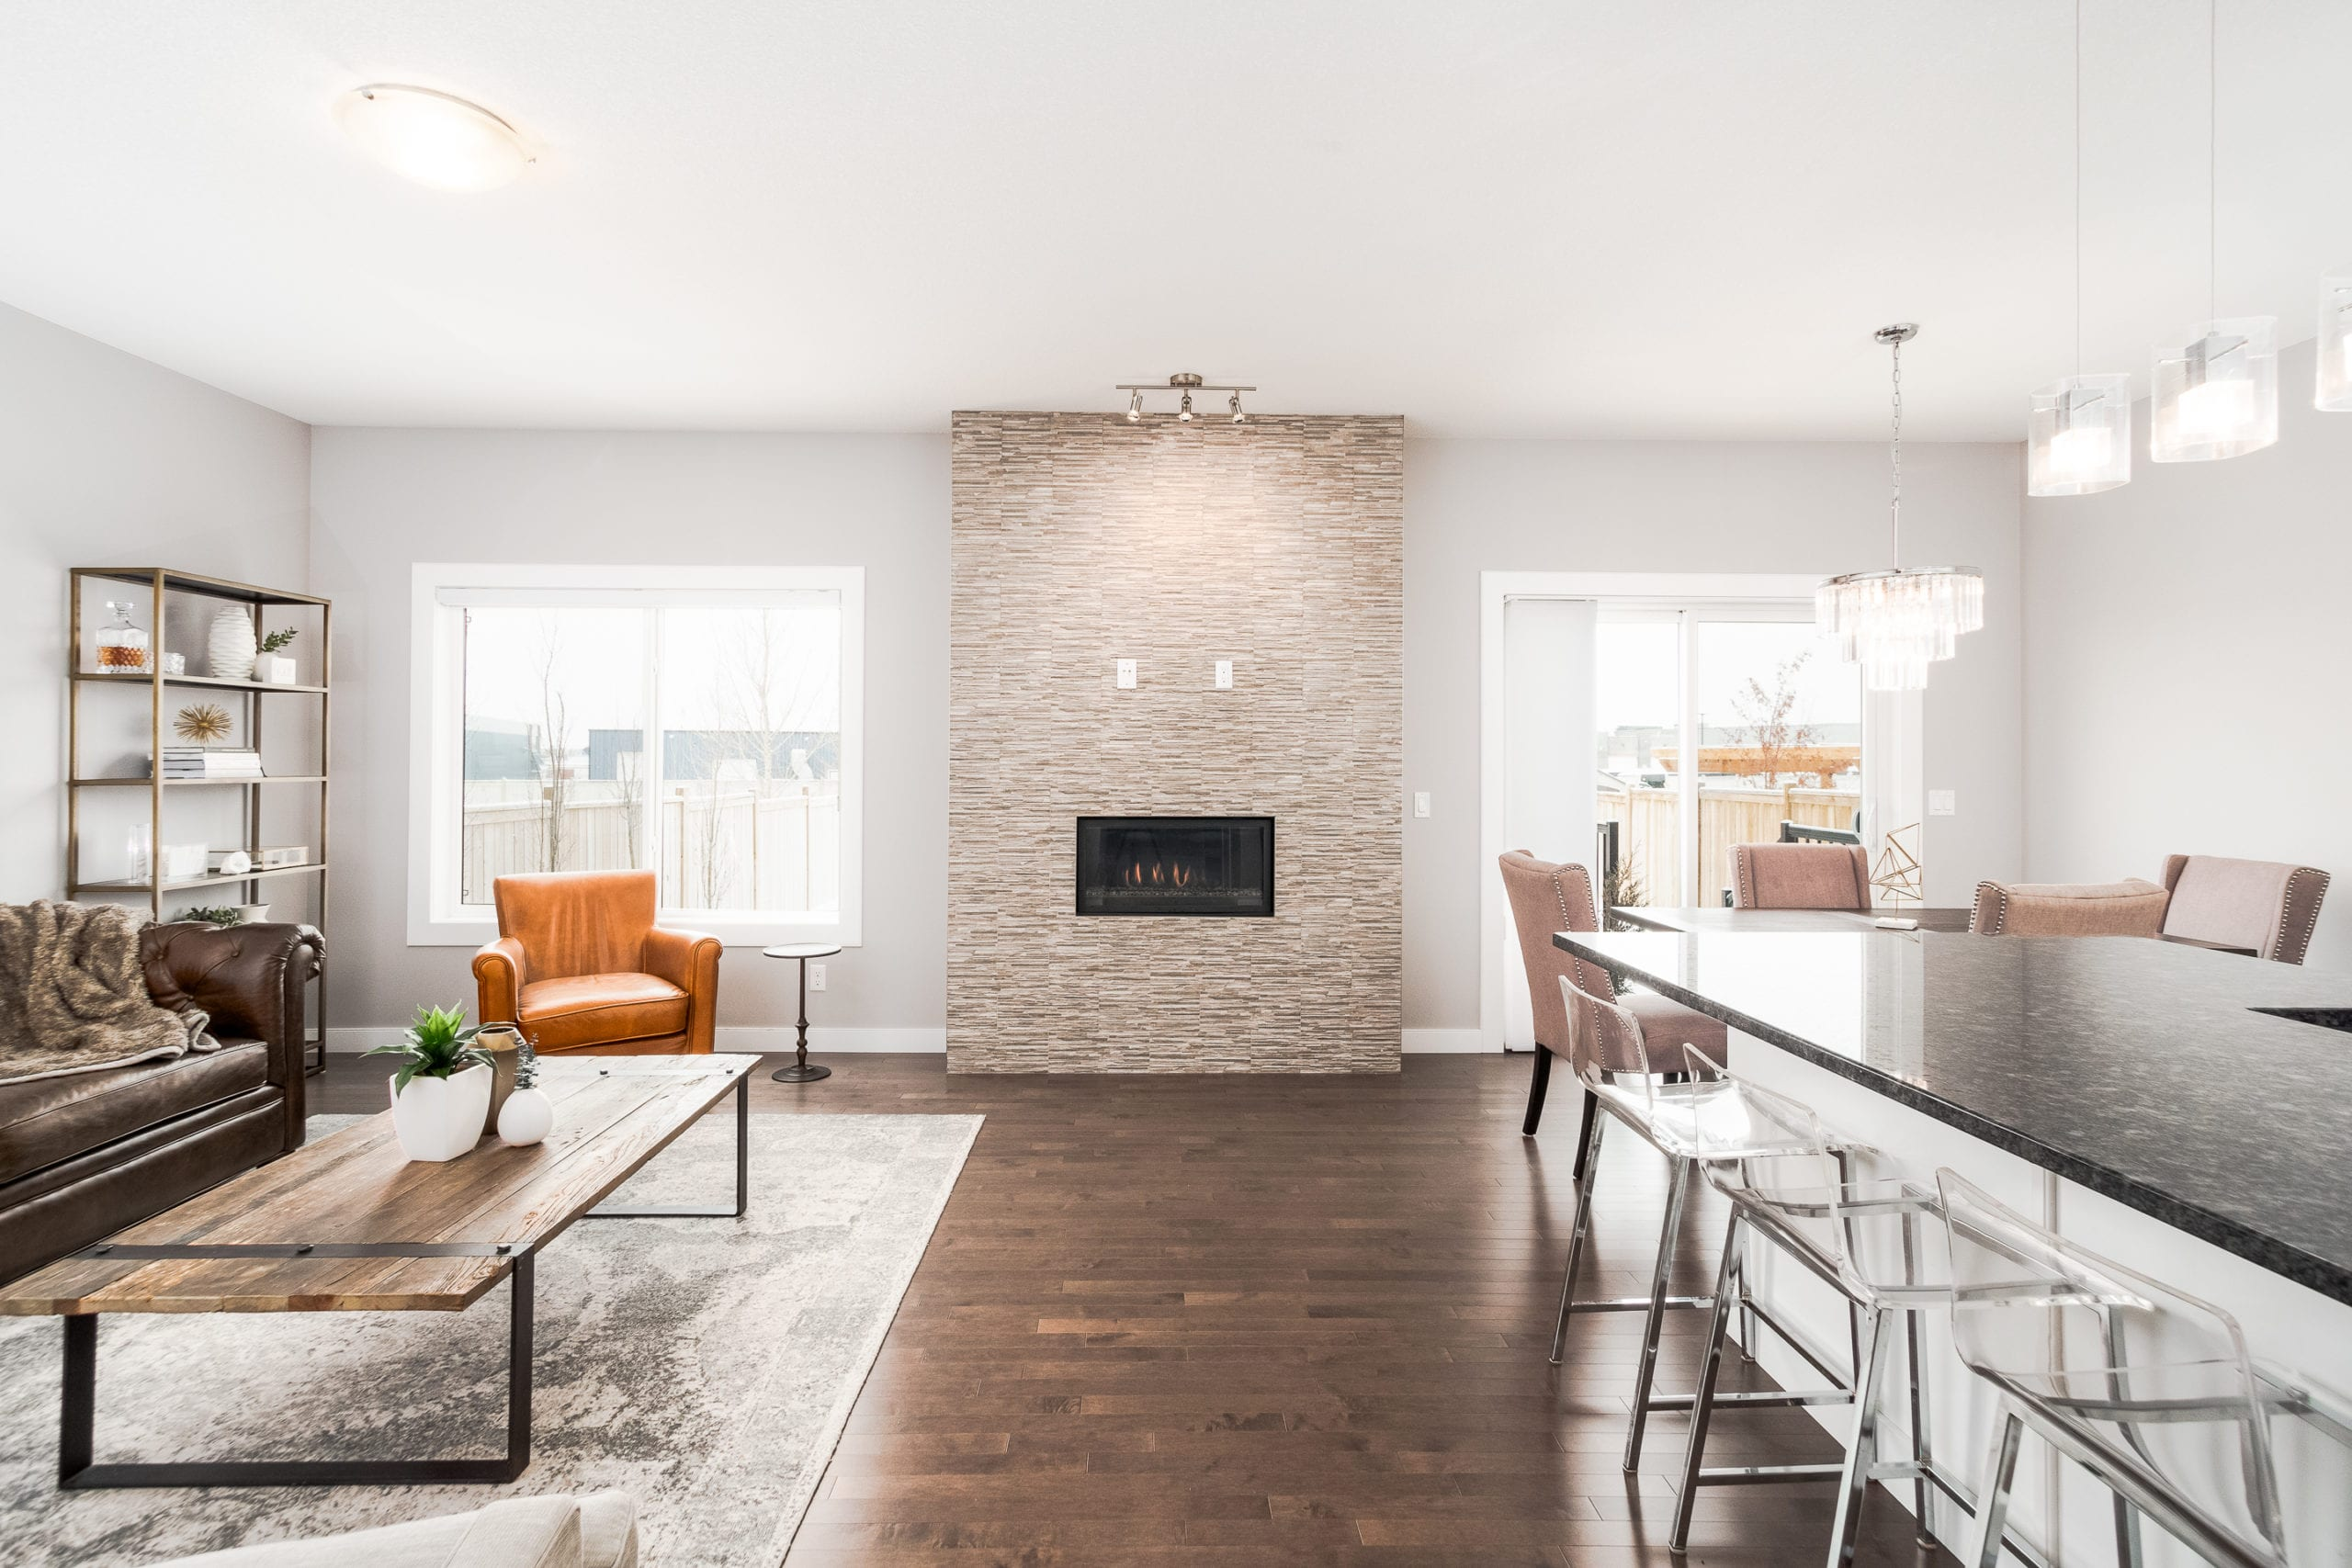 Hello Gorgeous - 1306 Kings Heights Way SE, Airdrie AB. - Tara Molina Real Estate (13 of 53)